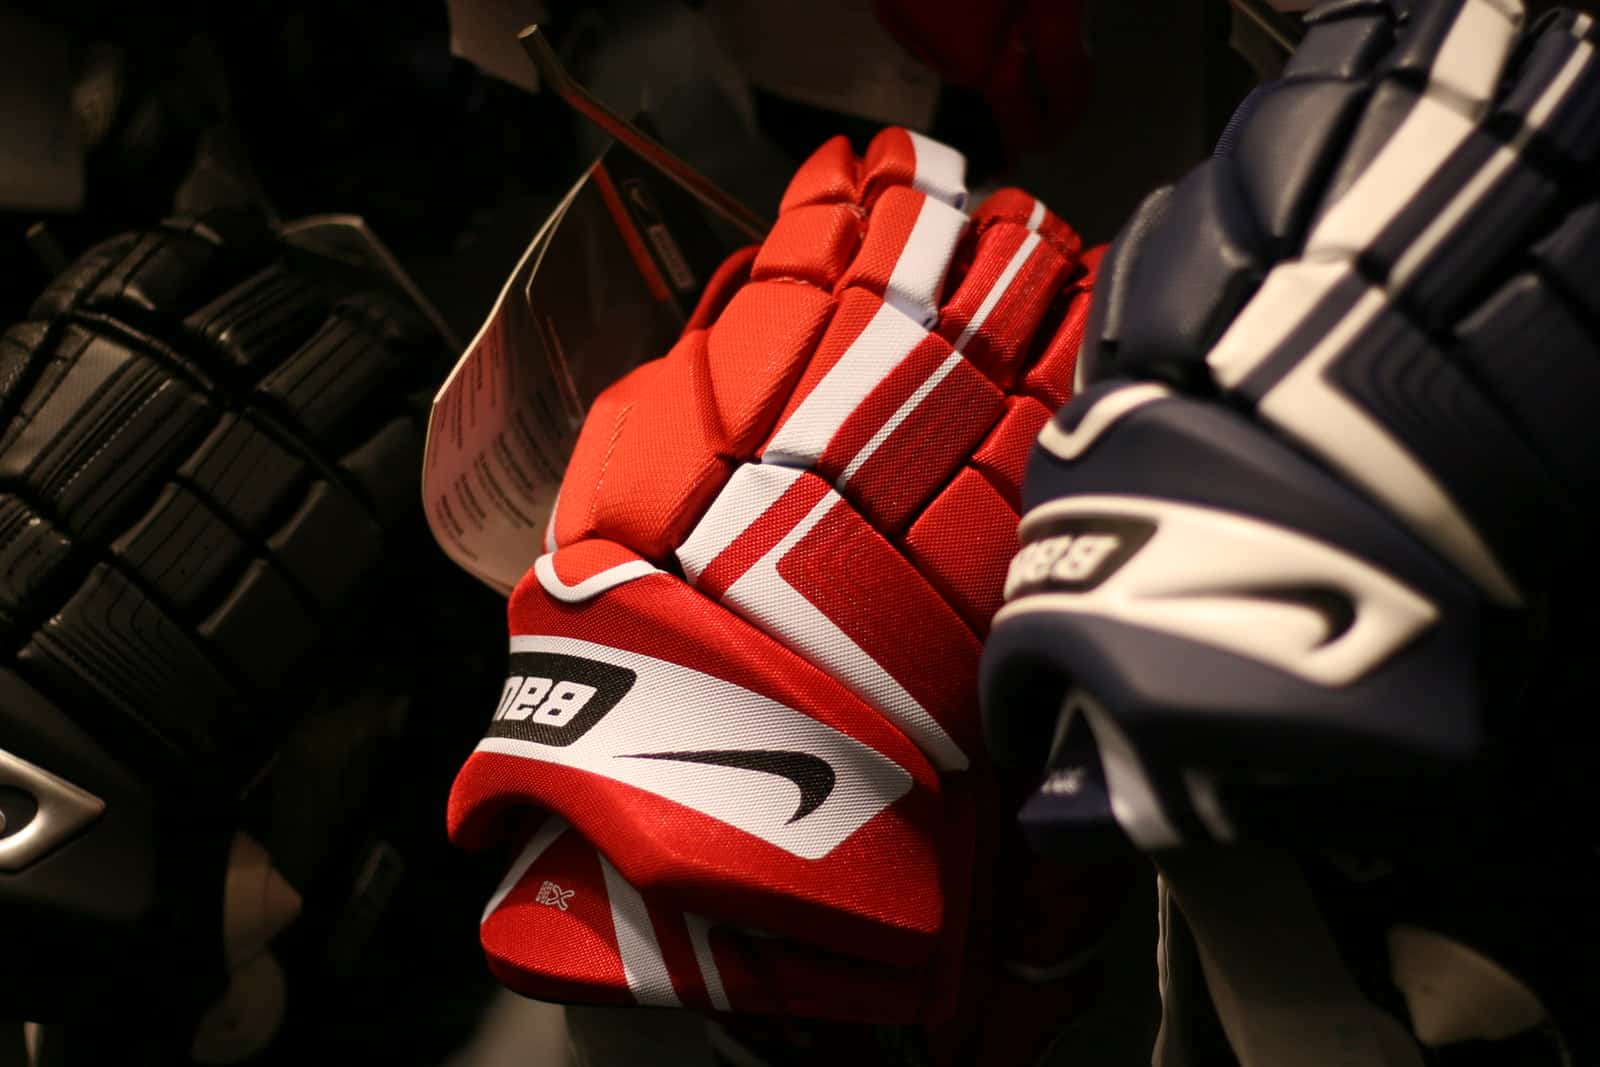 clean hockey gloves